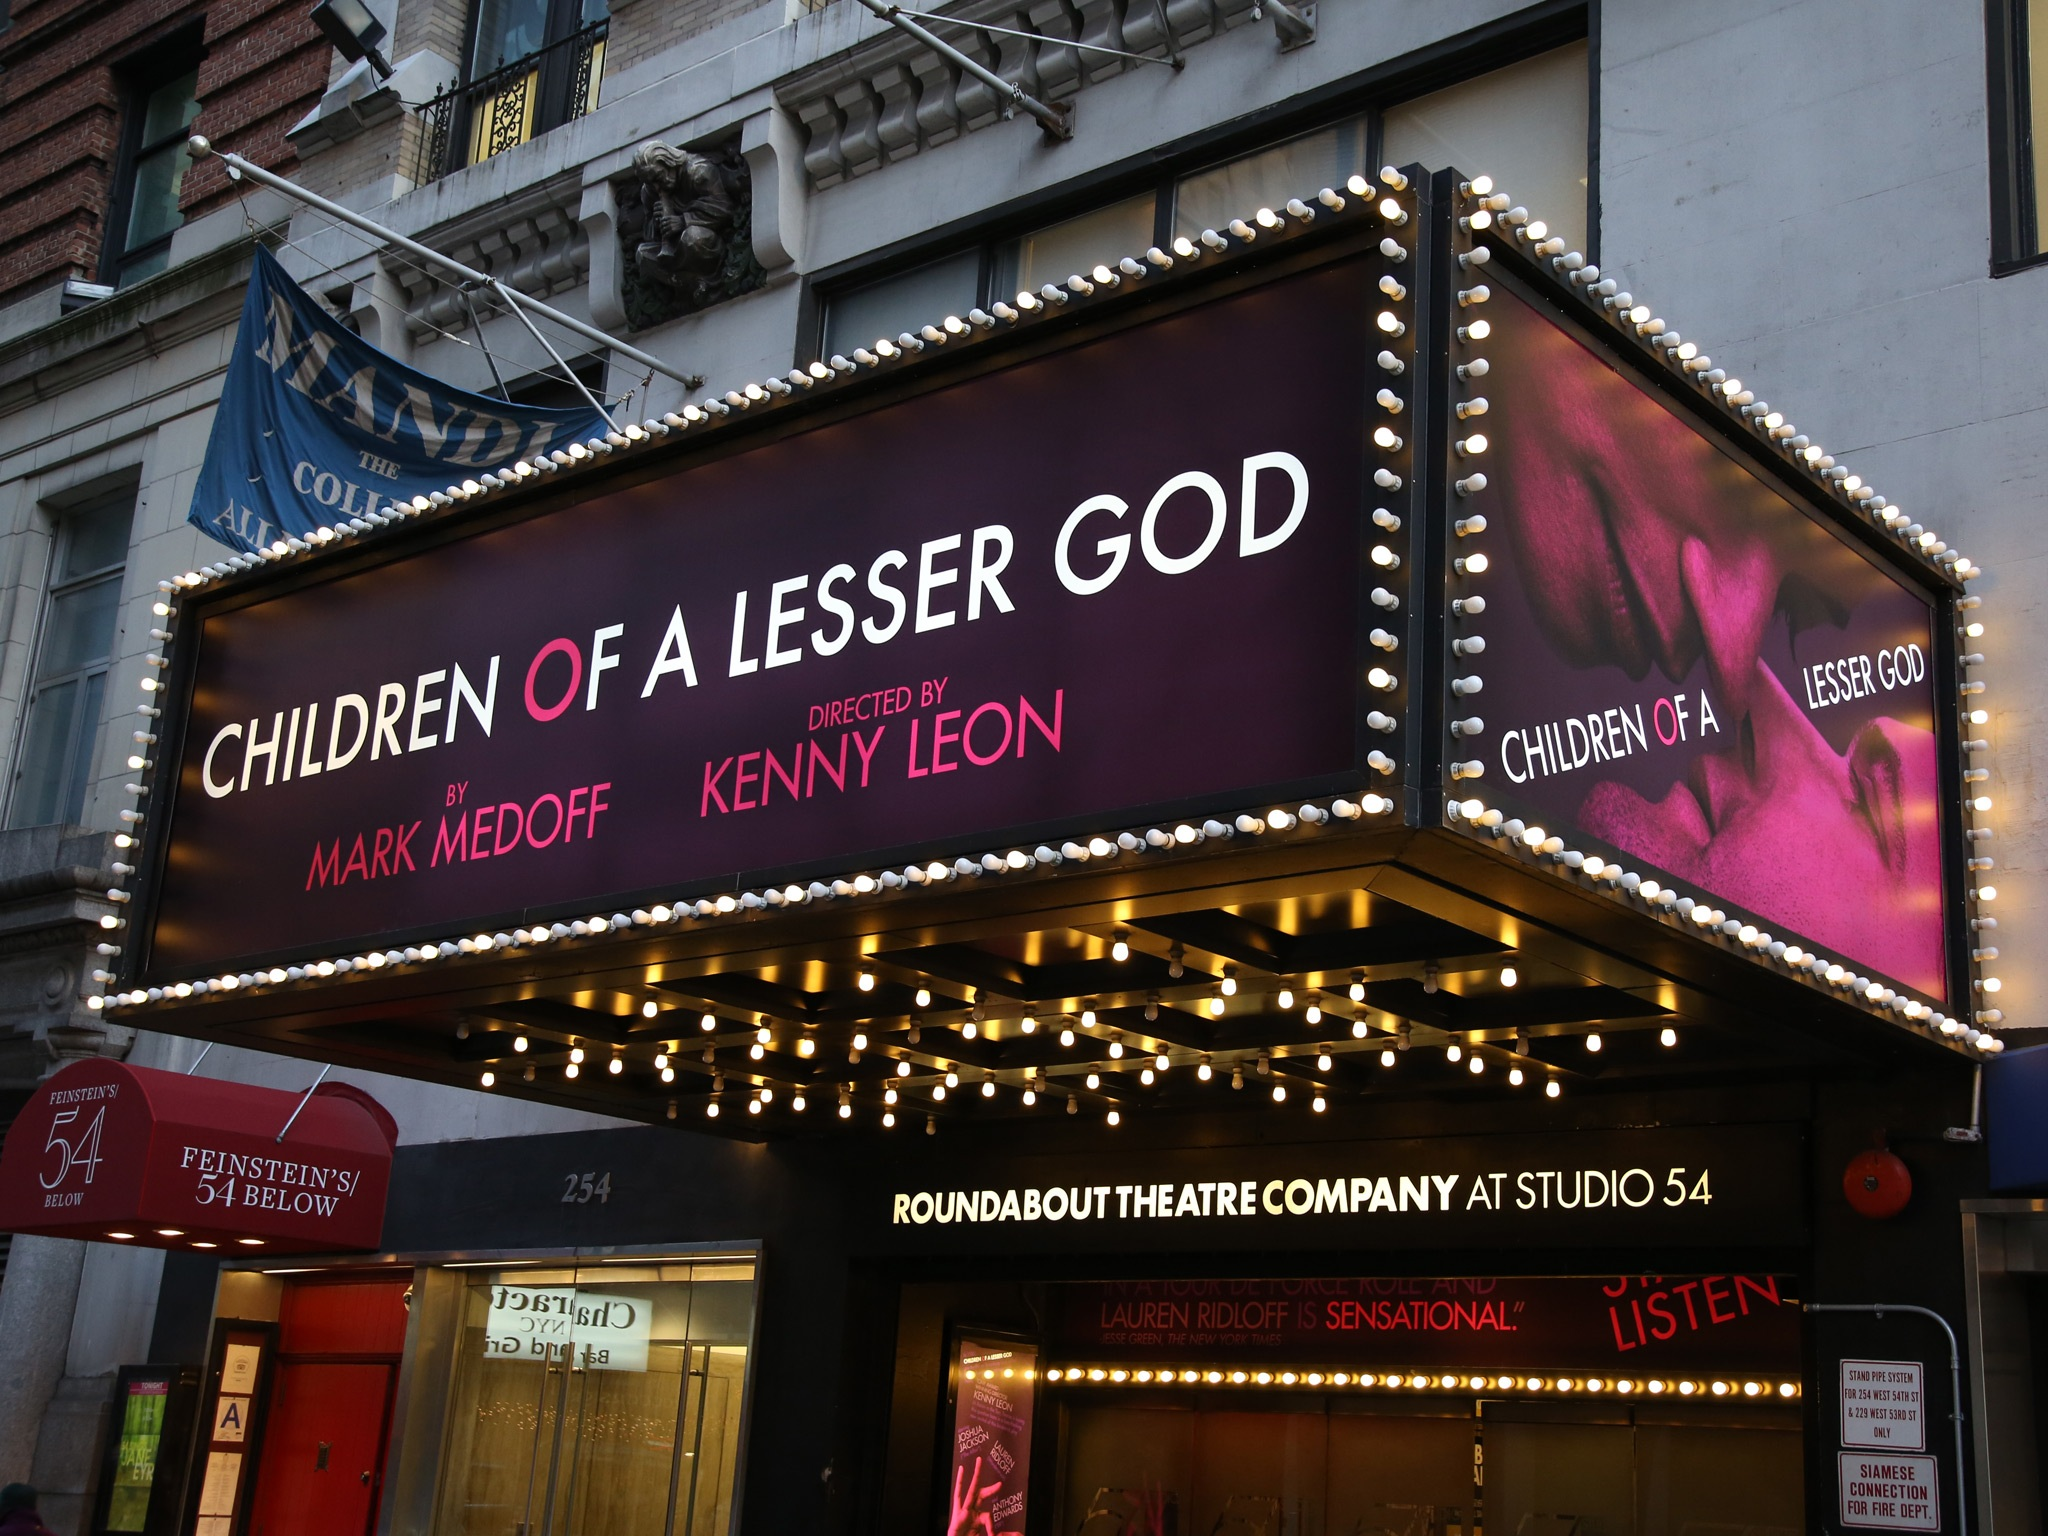 Children of a Lesser God Marquee